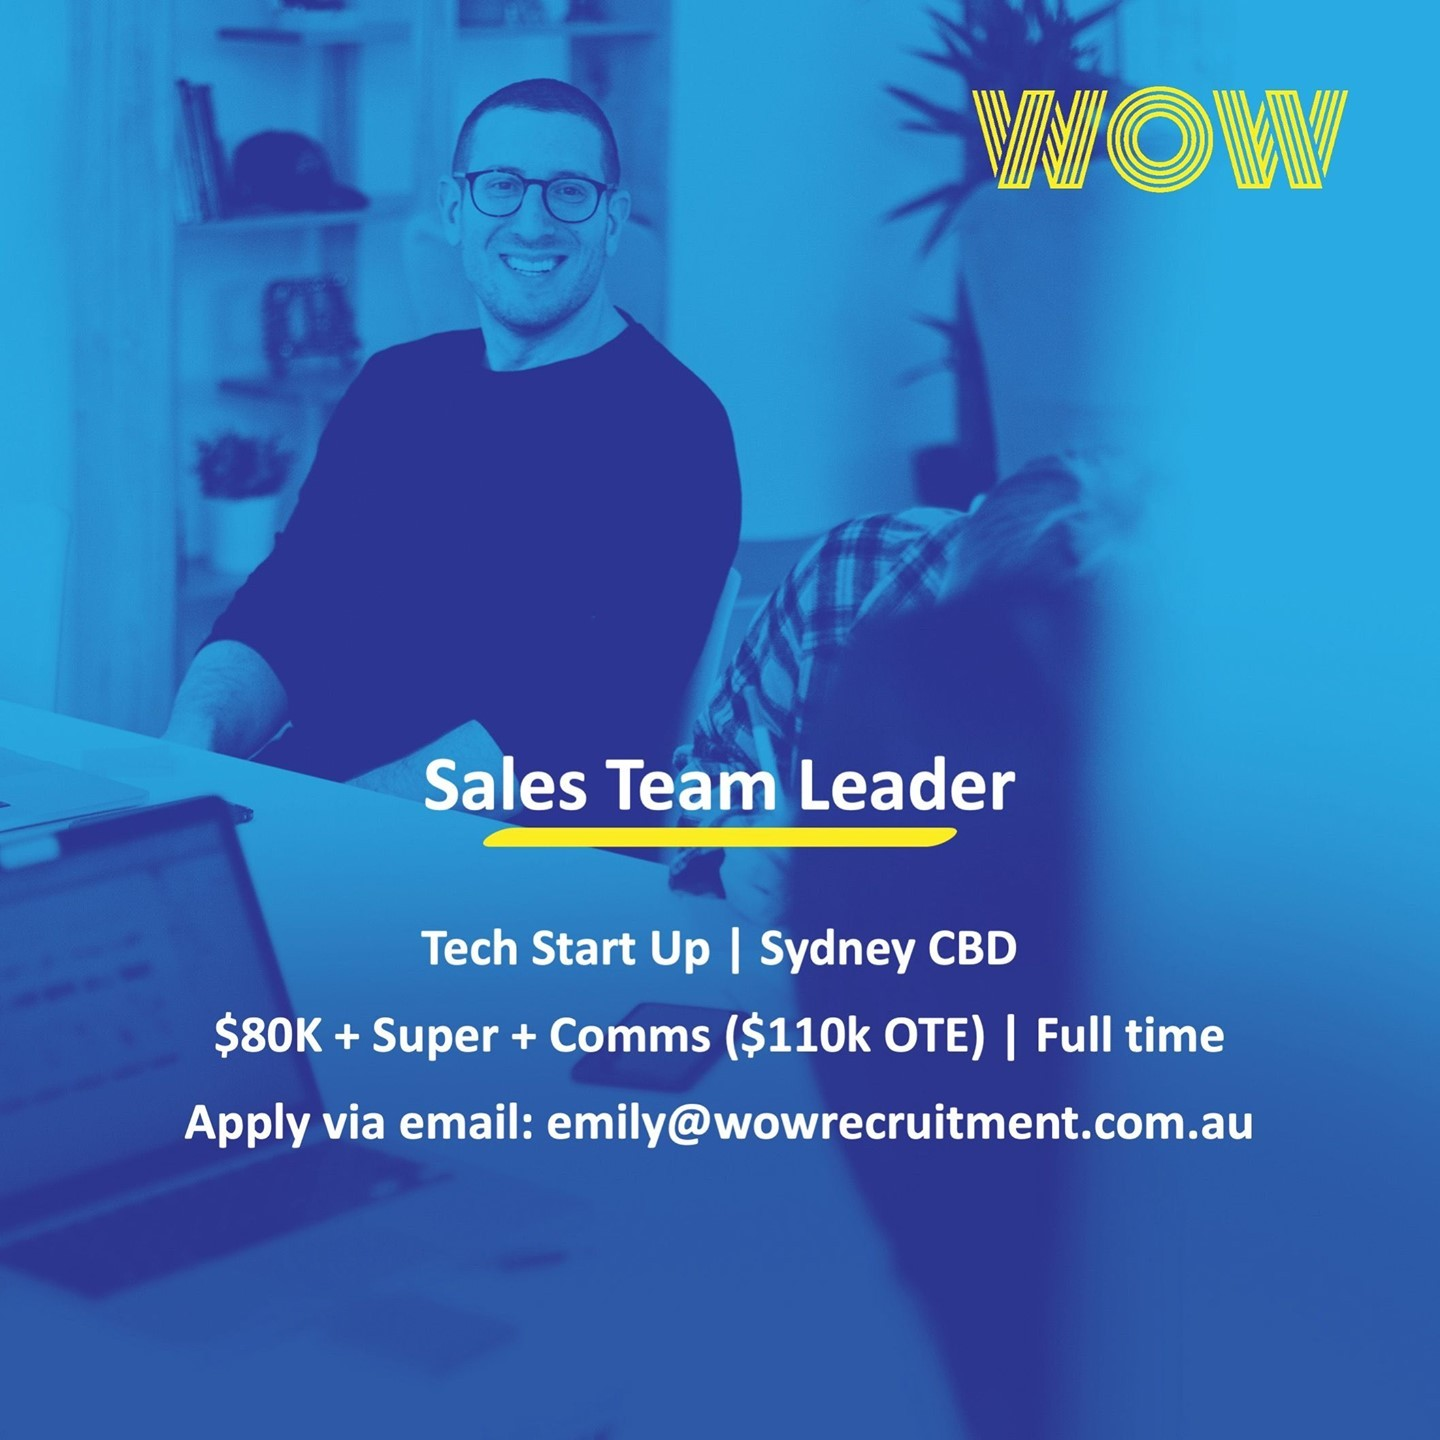 WOW are recruiting an ambitious Sales Team Leader for one of our SaaS clients in Sydney CBD! Reach out to Emily McLeod via email for more info!  ️